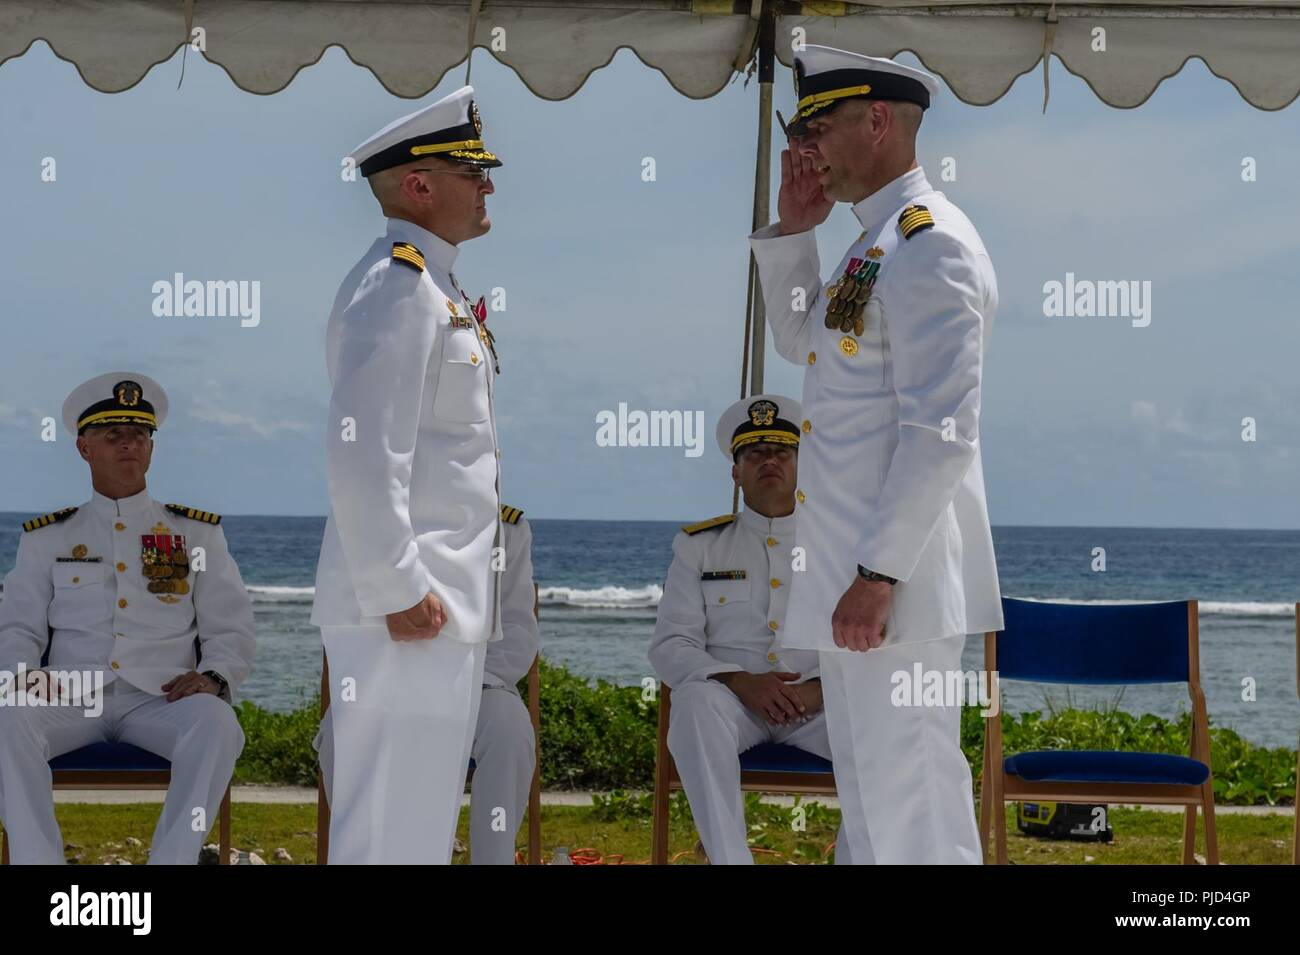 ASAN BEACH, Guam (July 19, 2018) Capt. Steven Stasick (left) relieves Capt. Jeffrey Kilian as commodore of the 30th Naval Construction Regiment during a change of command ceremony at the War in the Pacific National Historical Park Asan Beach Unit. - Stock Image